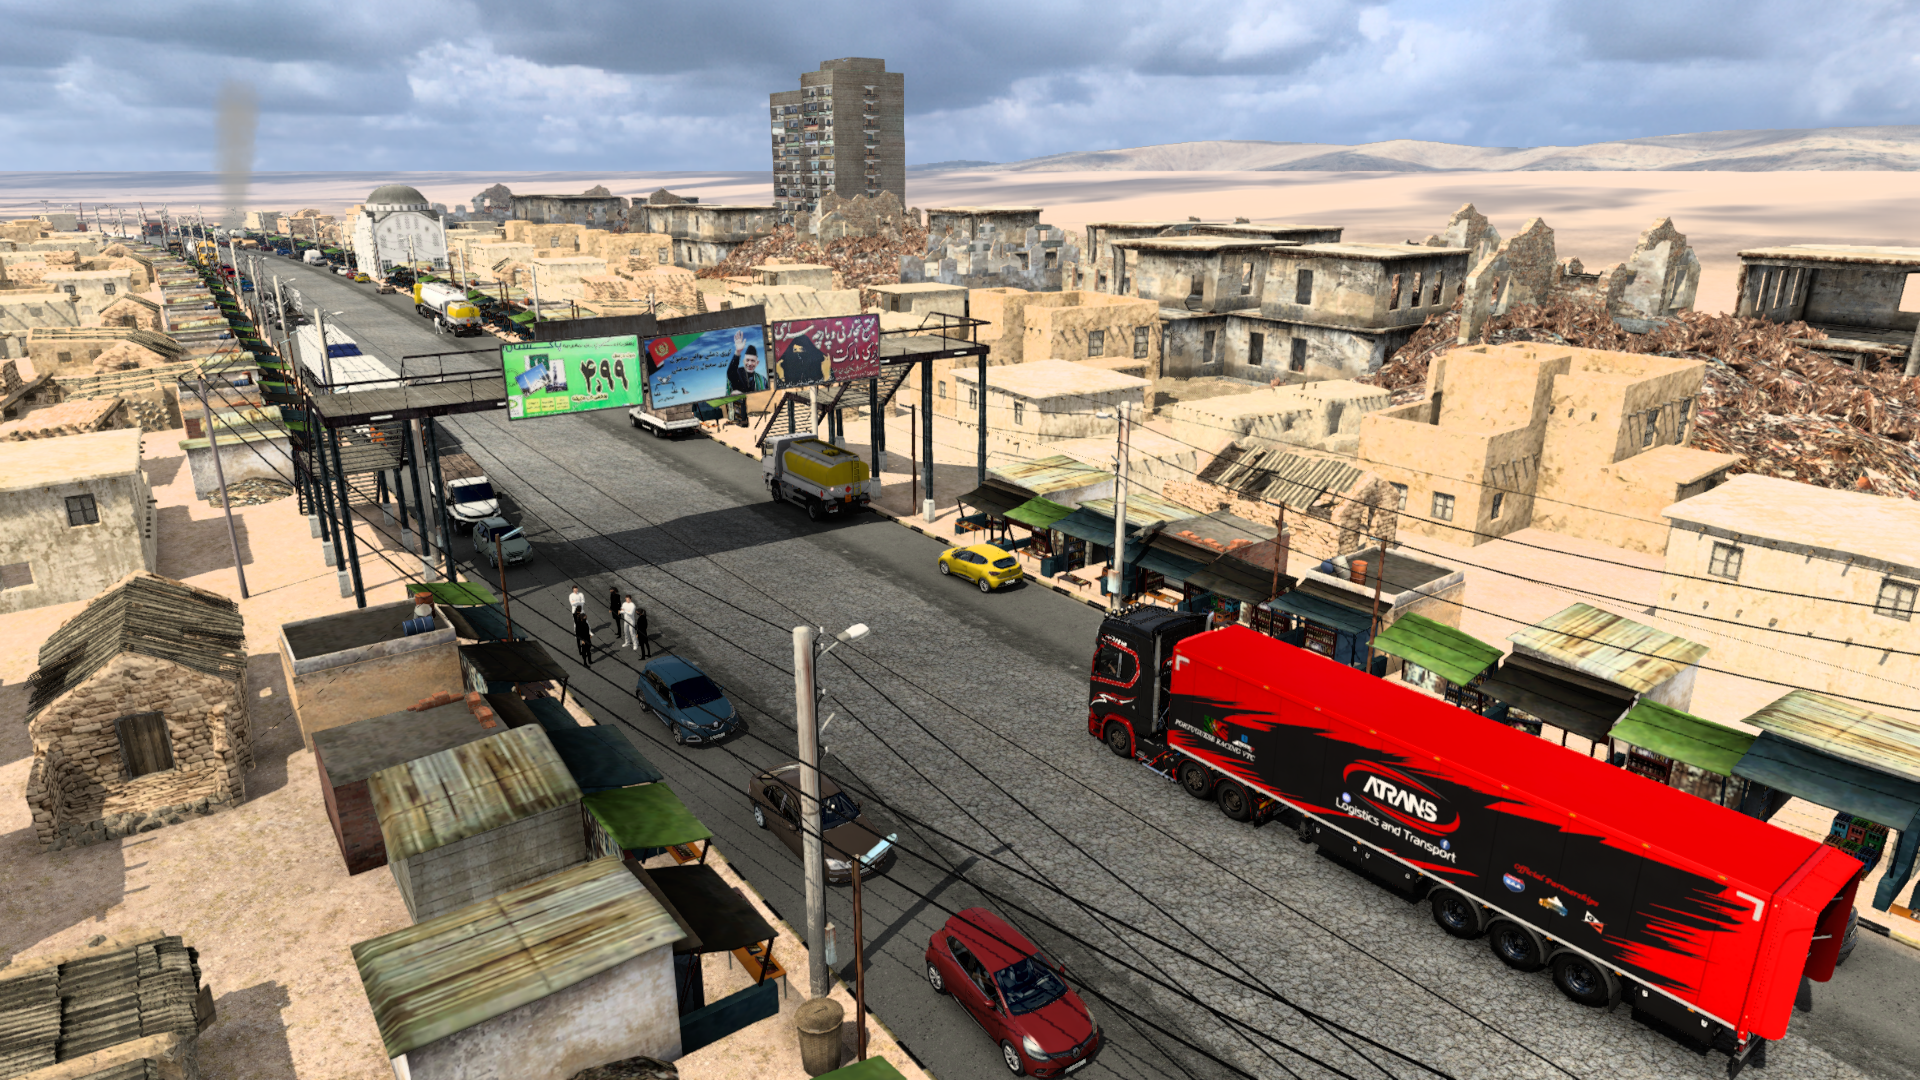 ets2_20210904_231850_00.png